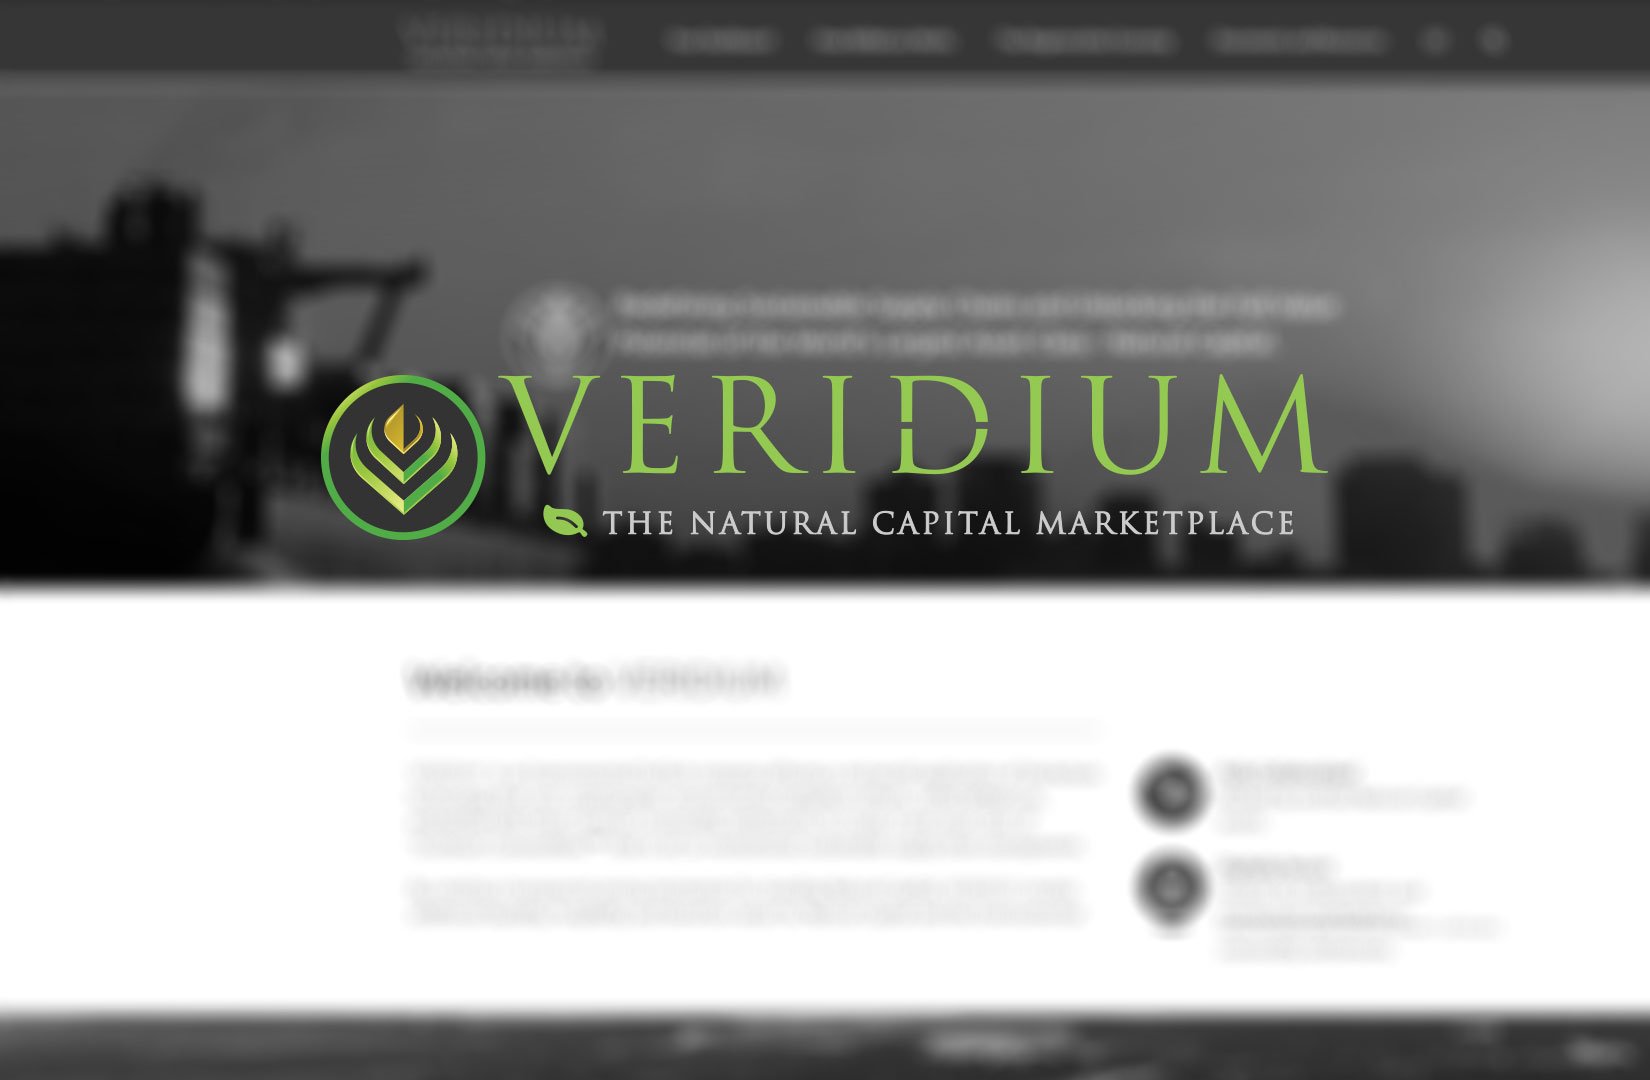 VERIDIUM is Redefining Sustainable Supply Chains and Unlocking the Full Value Potential of the World's Largest Asset Class - Natural Capital.